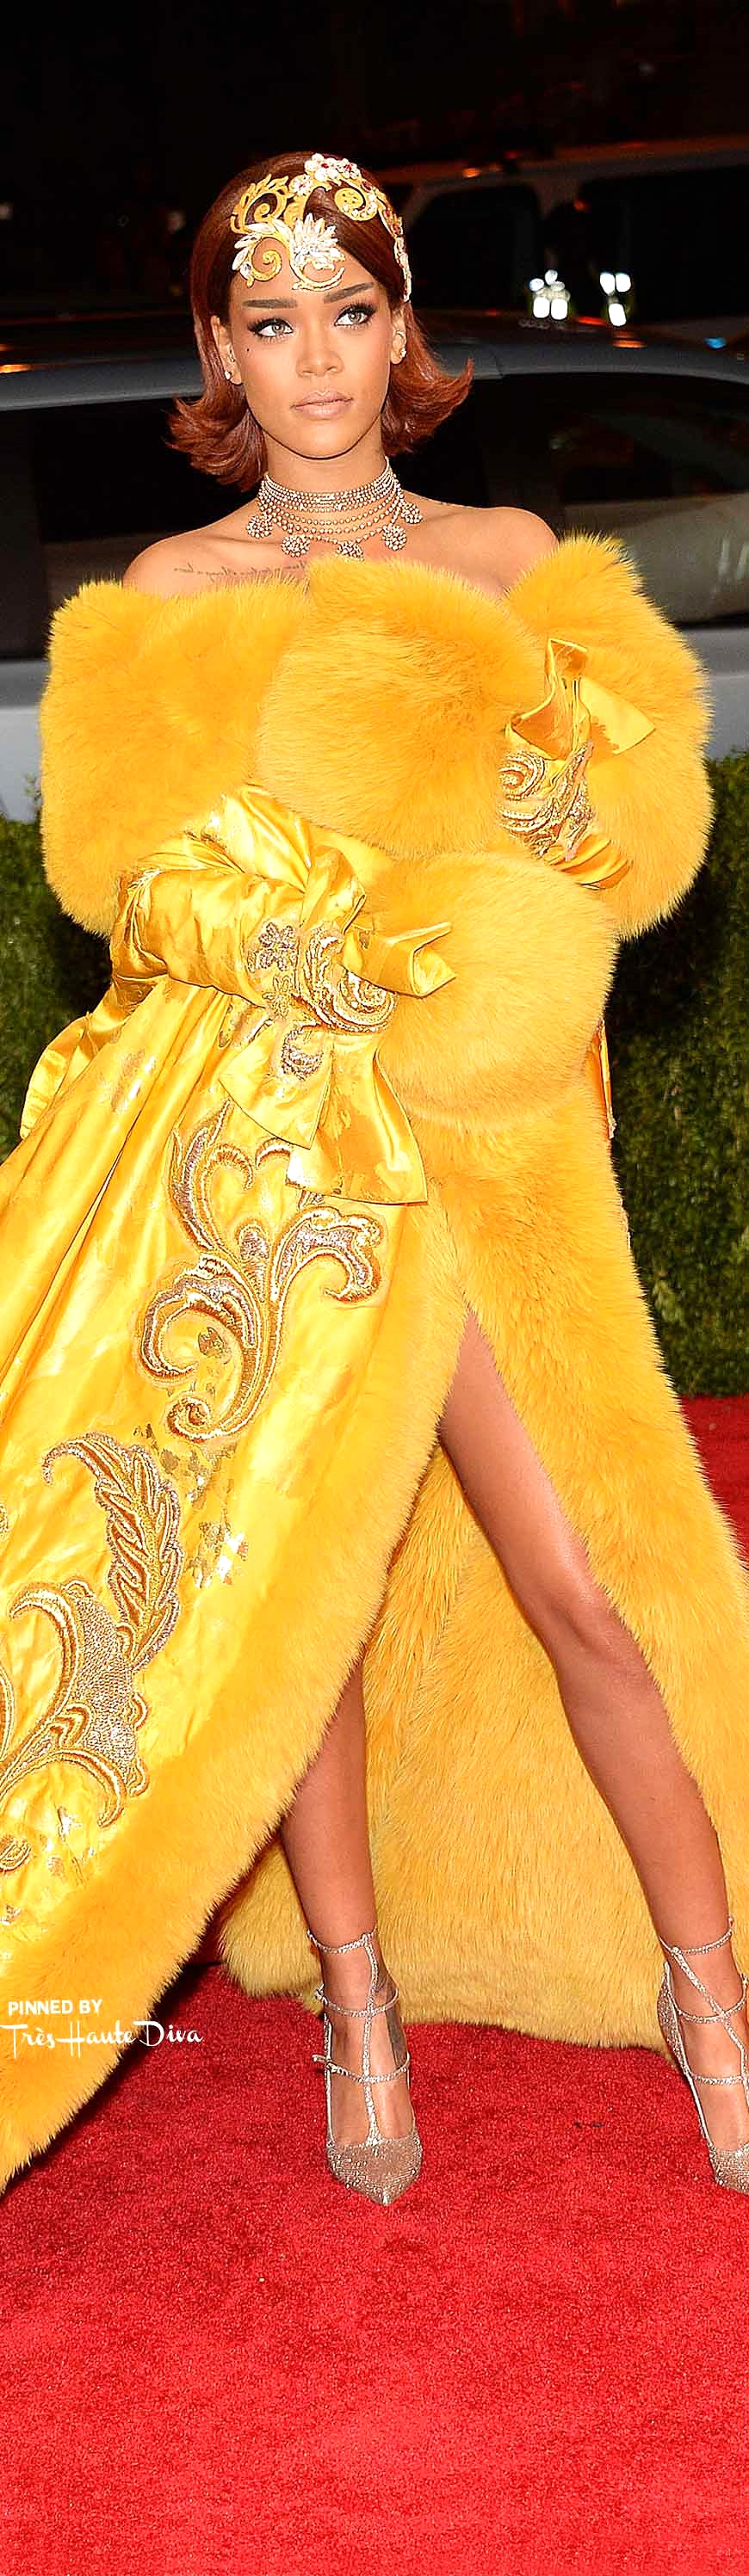 Rihanna in Guo Pei Couture, Louboutin Shoes  Getty Images/ Kevin Mazur